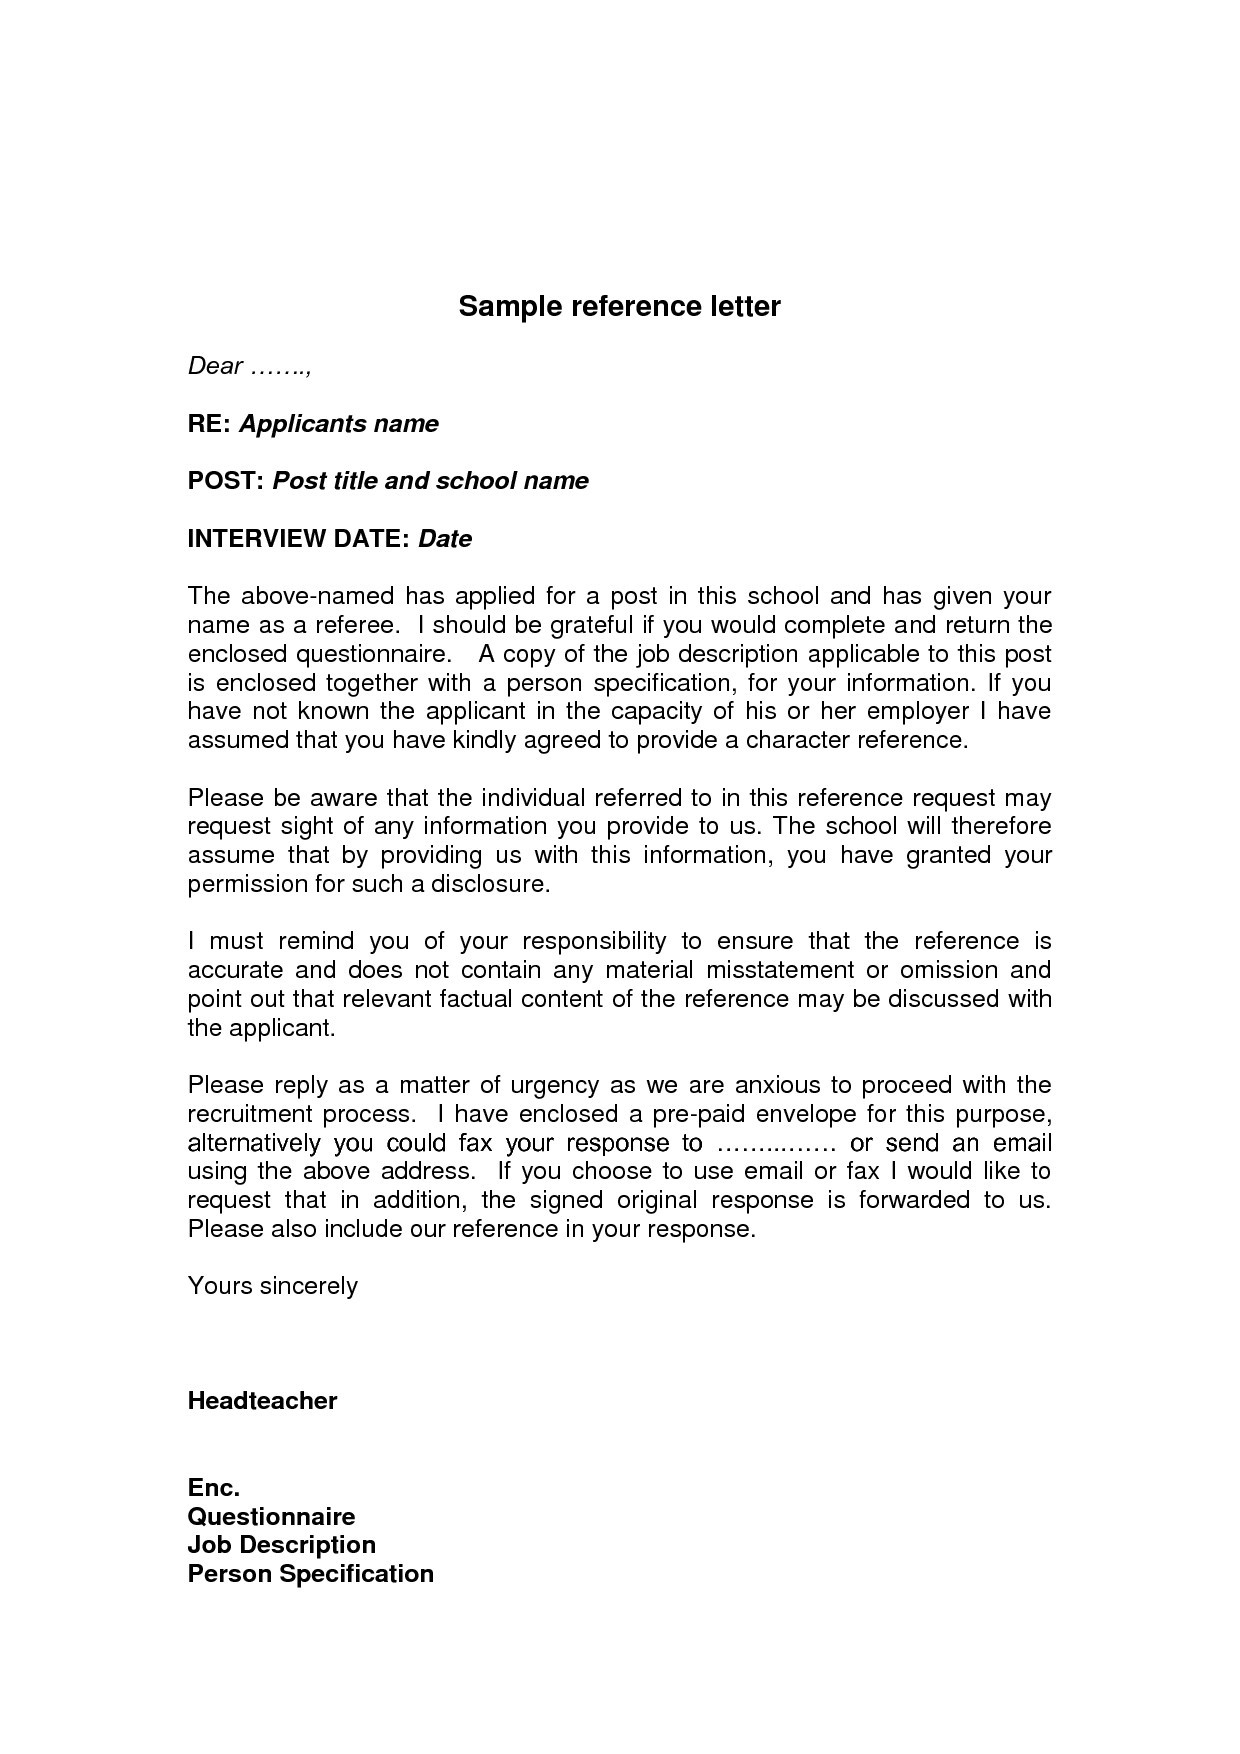 Business Referral Letter Template - Sample Personalcharacter Reference Letter Created Using Ms Word